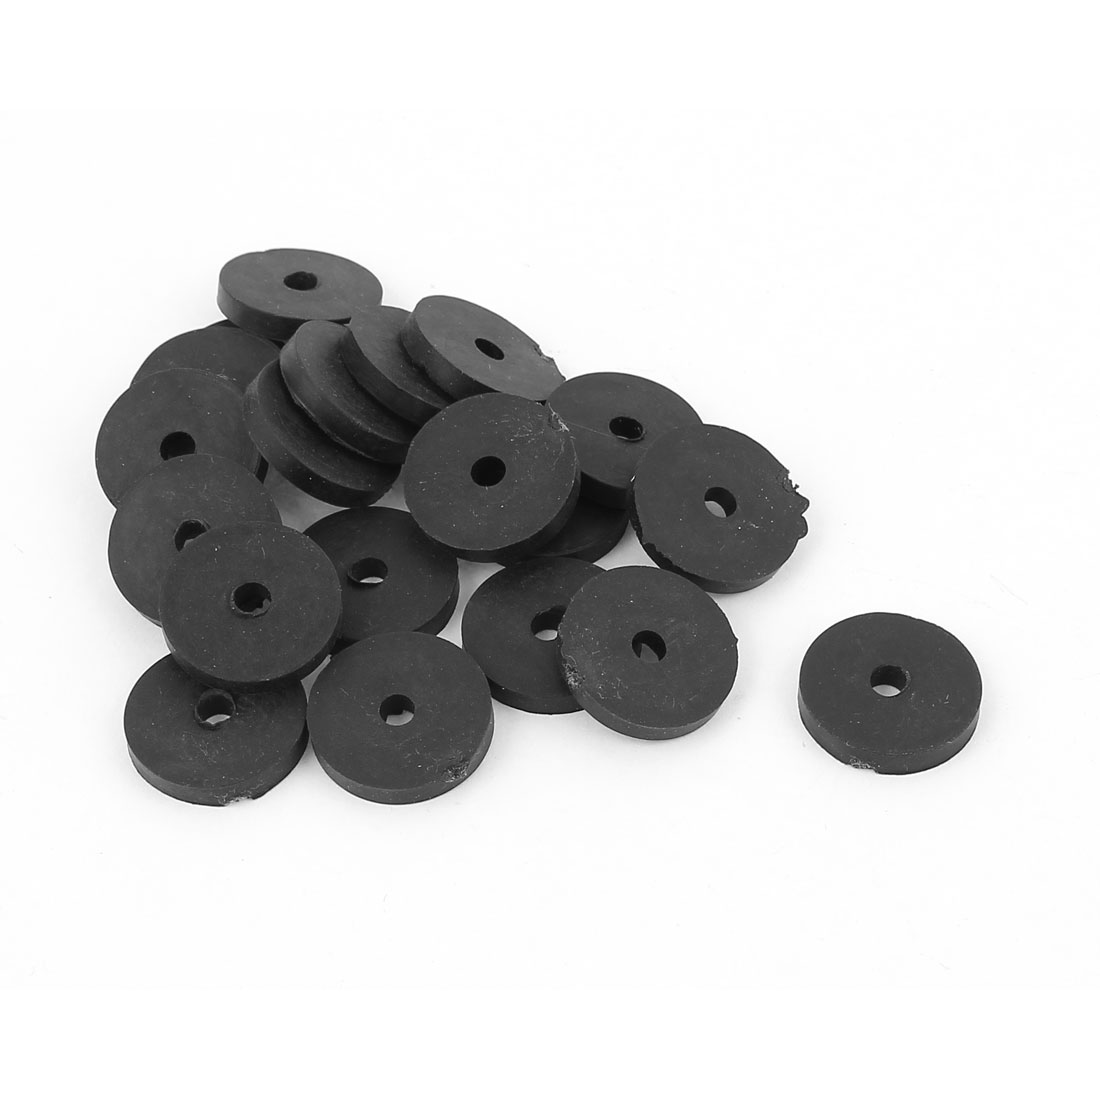 Faucet Rubber Washers Gaskets 20 Pcs Black for 3/8 BSP Female Thread Connector